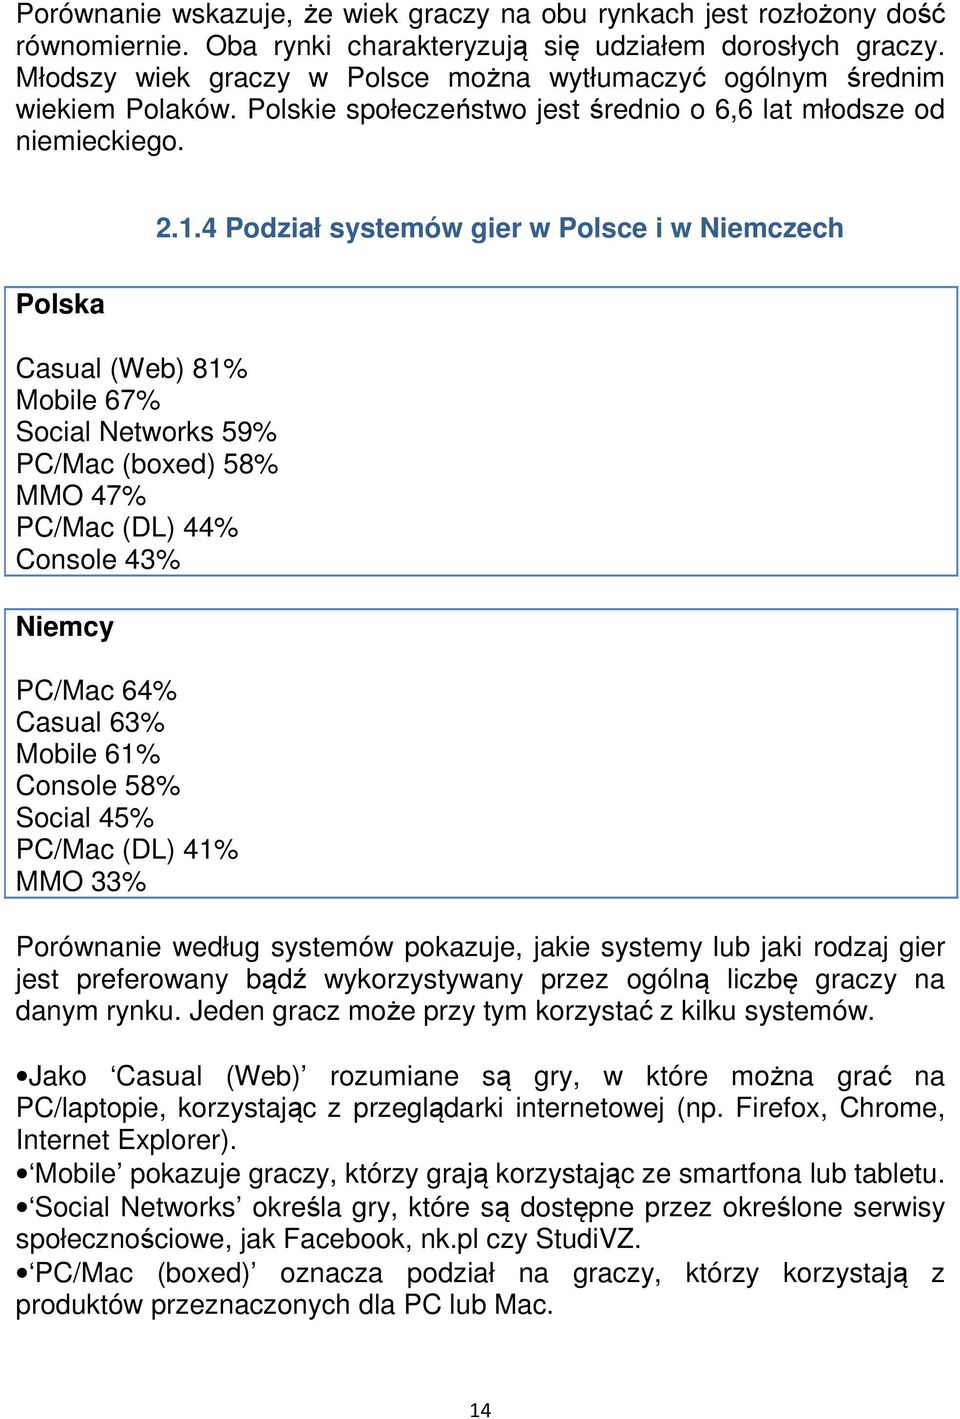 4 Podział systemów gier w Polsce i w Niemczech Polska Casual (Web) 81% Mobile 67% Social Networks 59% PC/Mac (boxed) 58% MMO 47% PC/Mac (DL) 44% Console 43% Niemcy PC/Mac 64% Casual 63% Mobile 61%